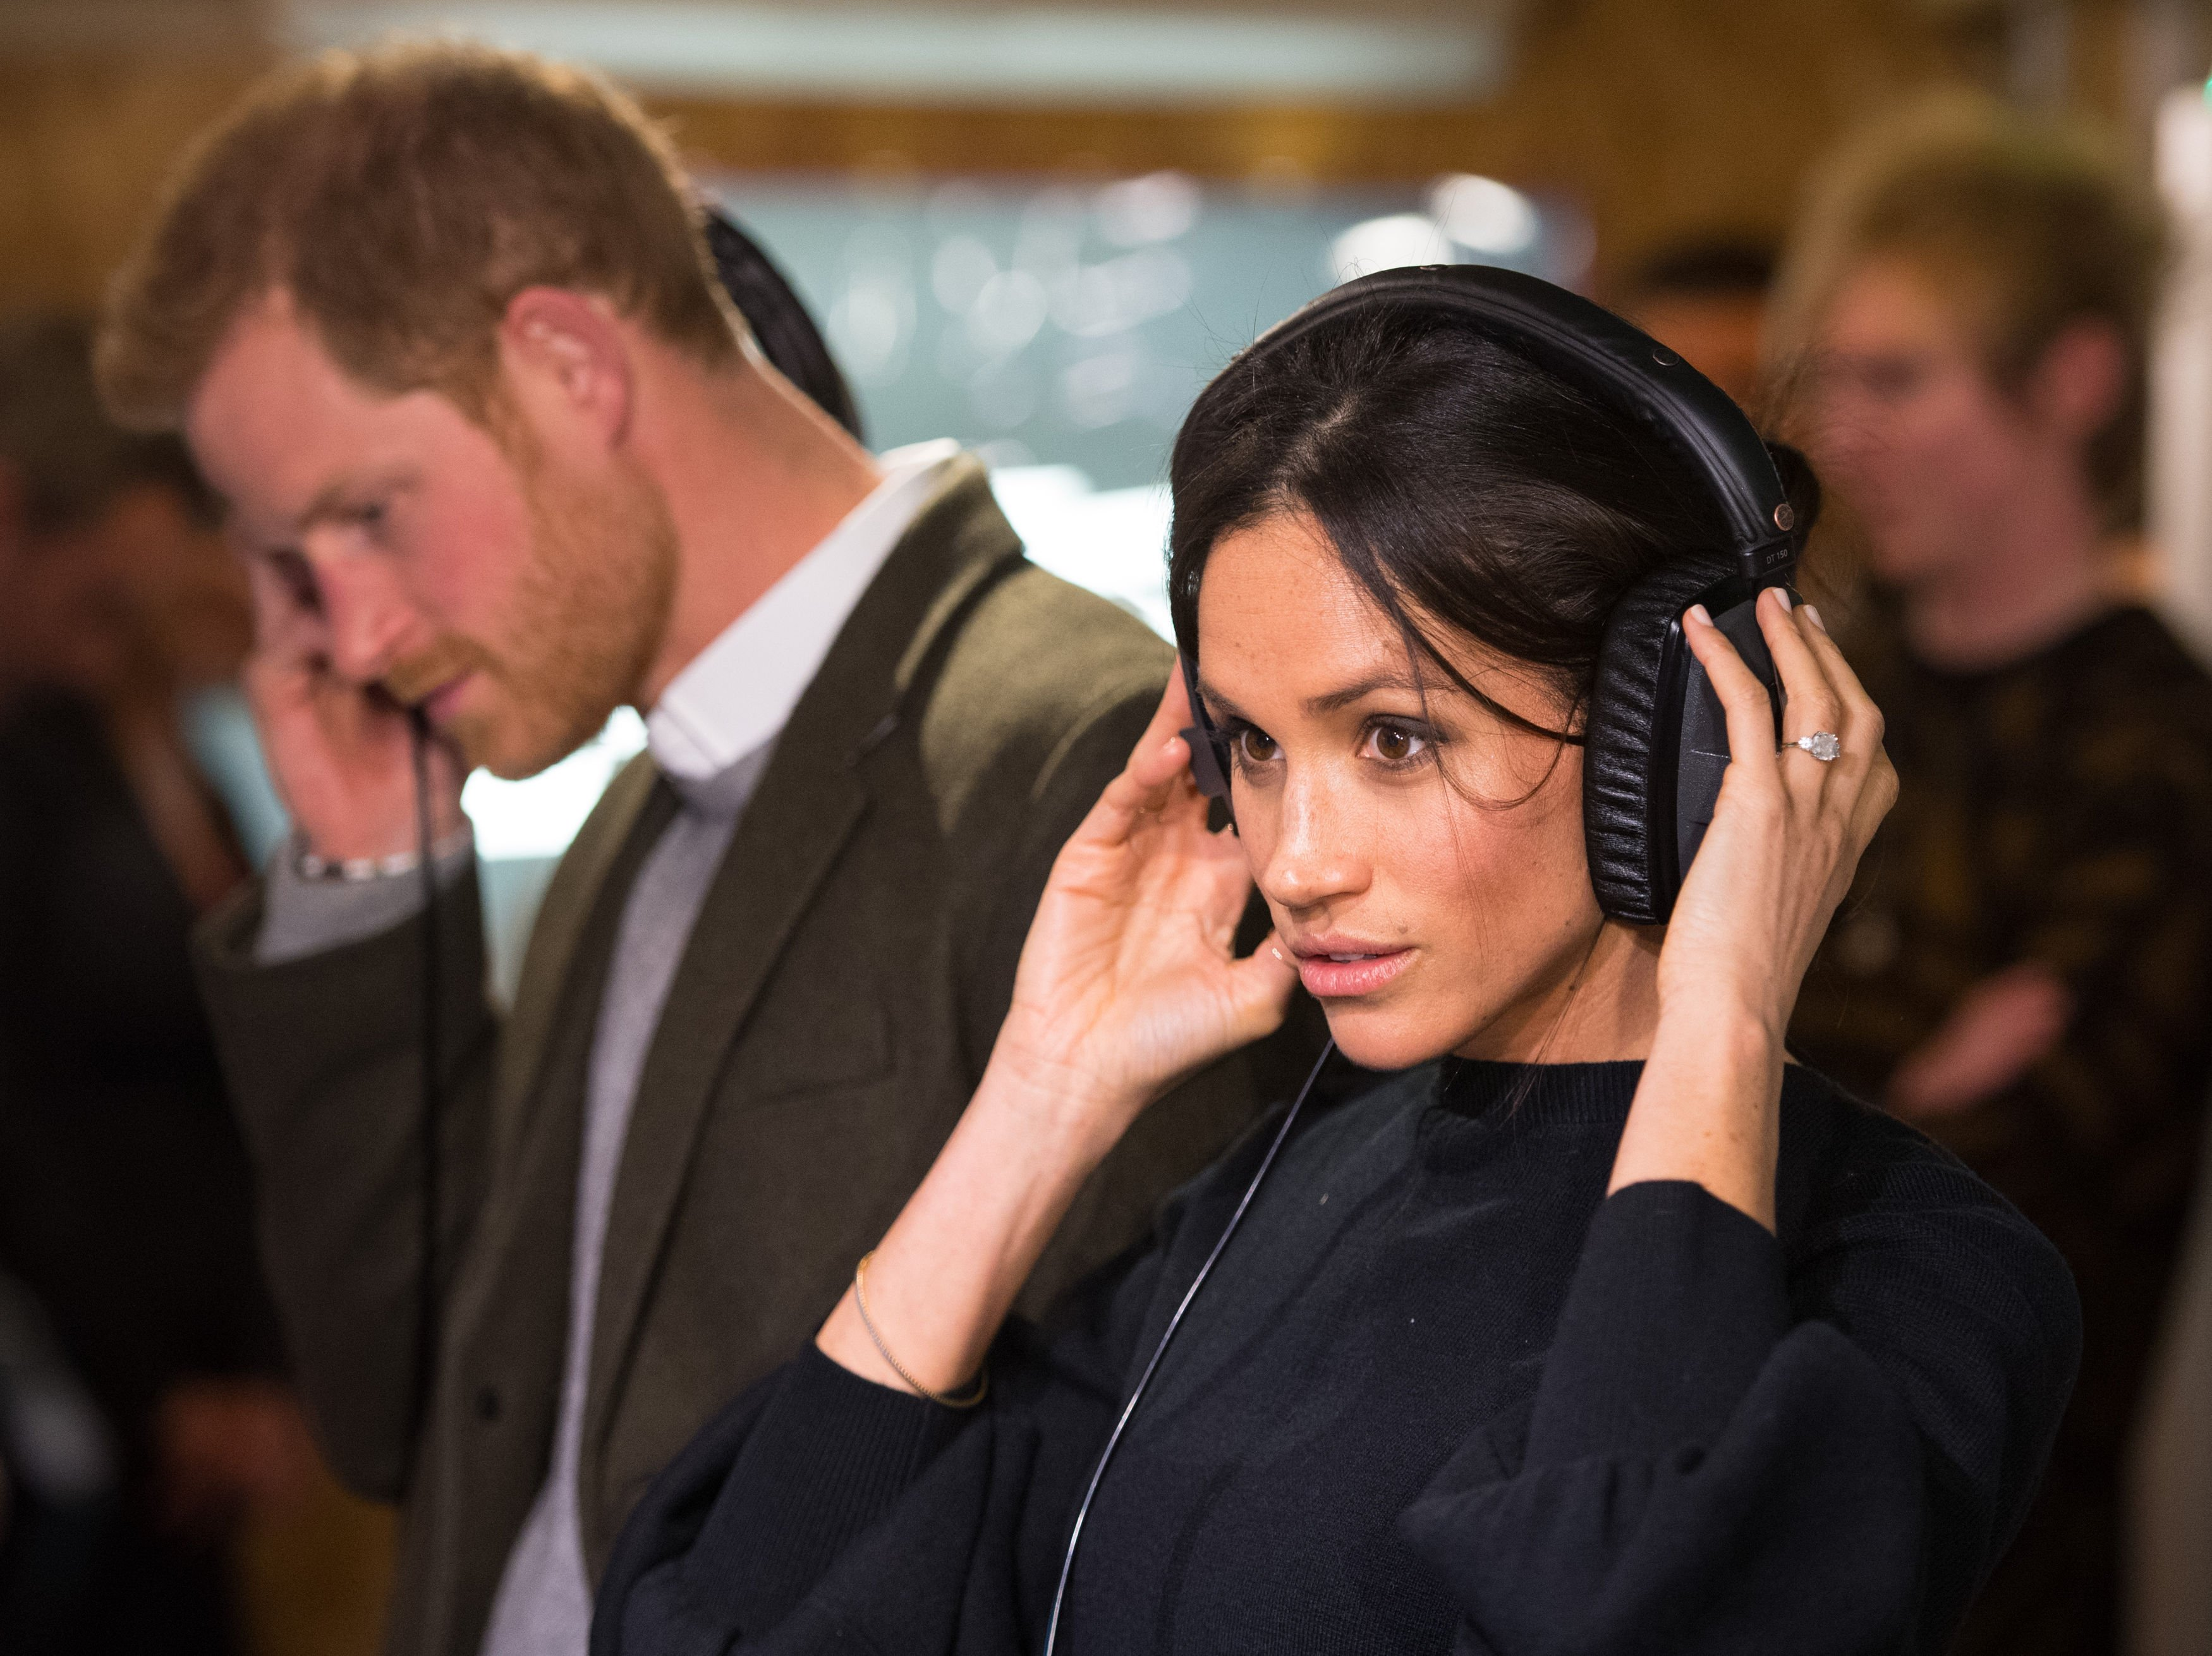 Prince Harry and Meghan Markle listen to a broadcast through headphones at Reprezent 107.3FM in Pop Brixton on January 9, 2018 | Photo: Getty Images